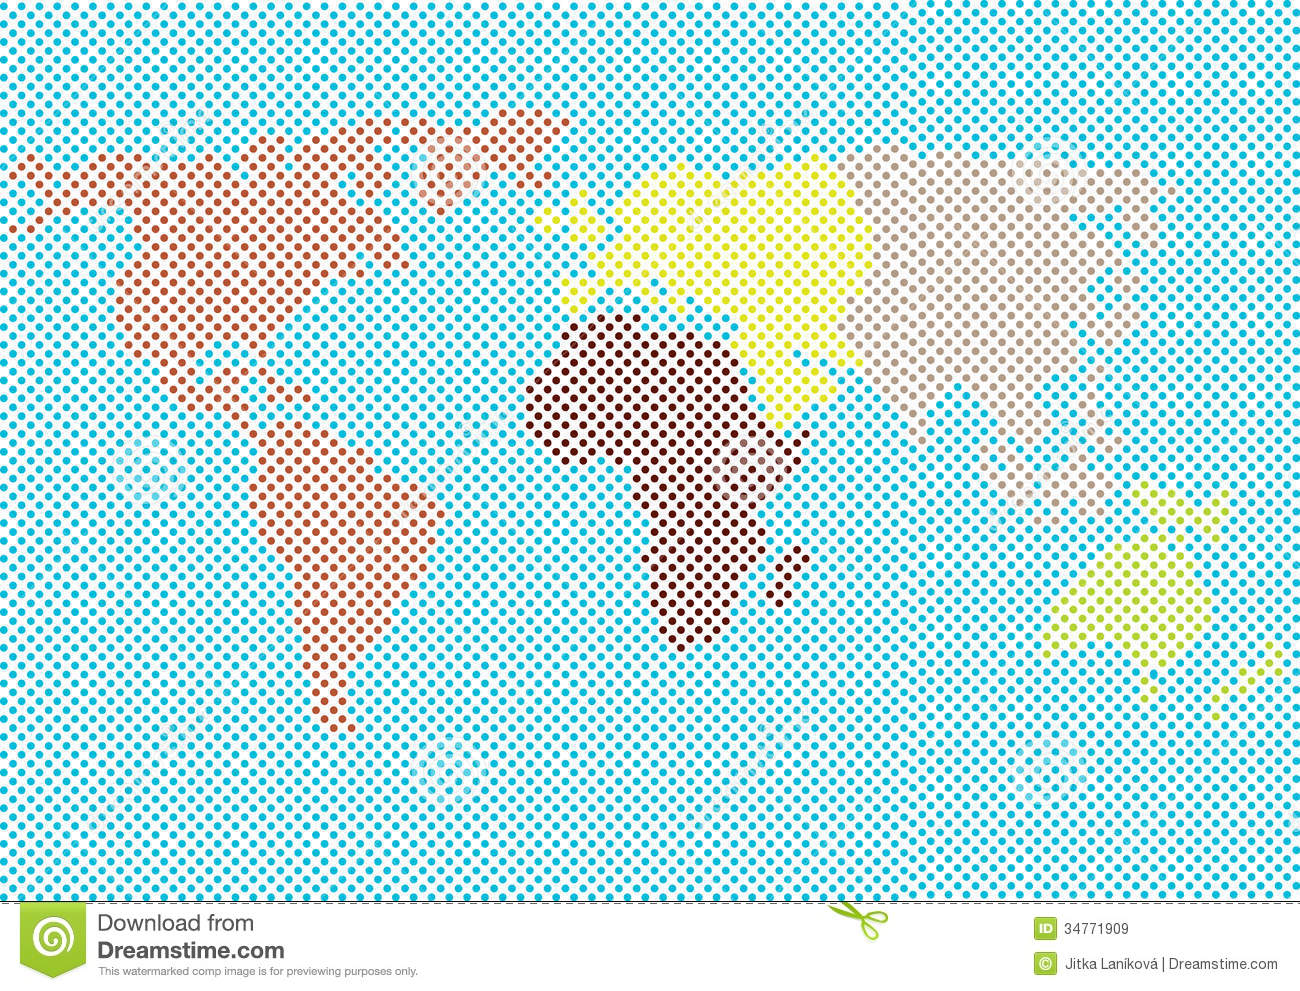 World map made of dots stock illustration illustration of world map made of dots continents colorful gumiabroncs Choice Image